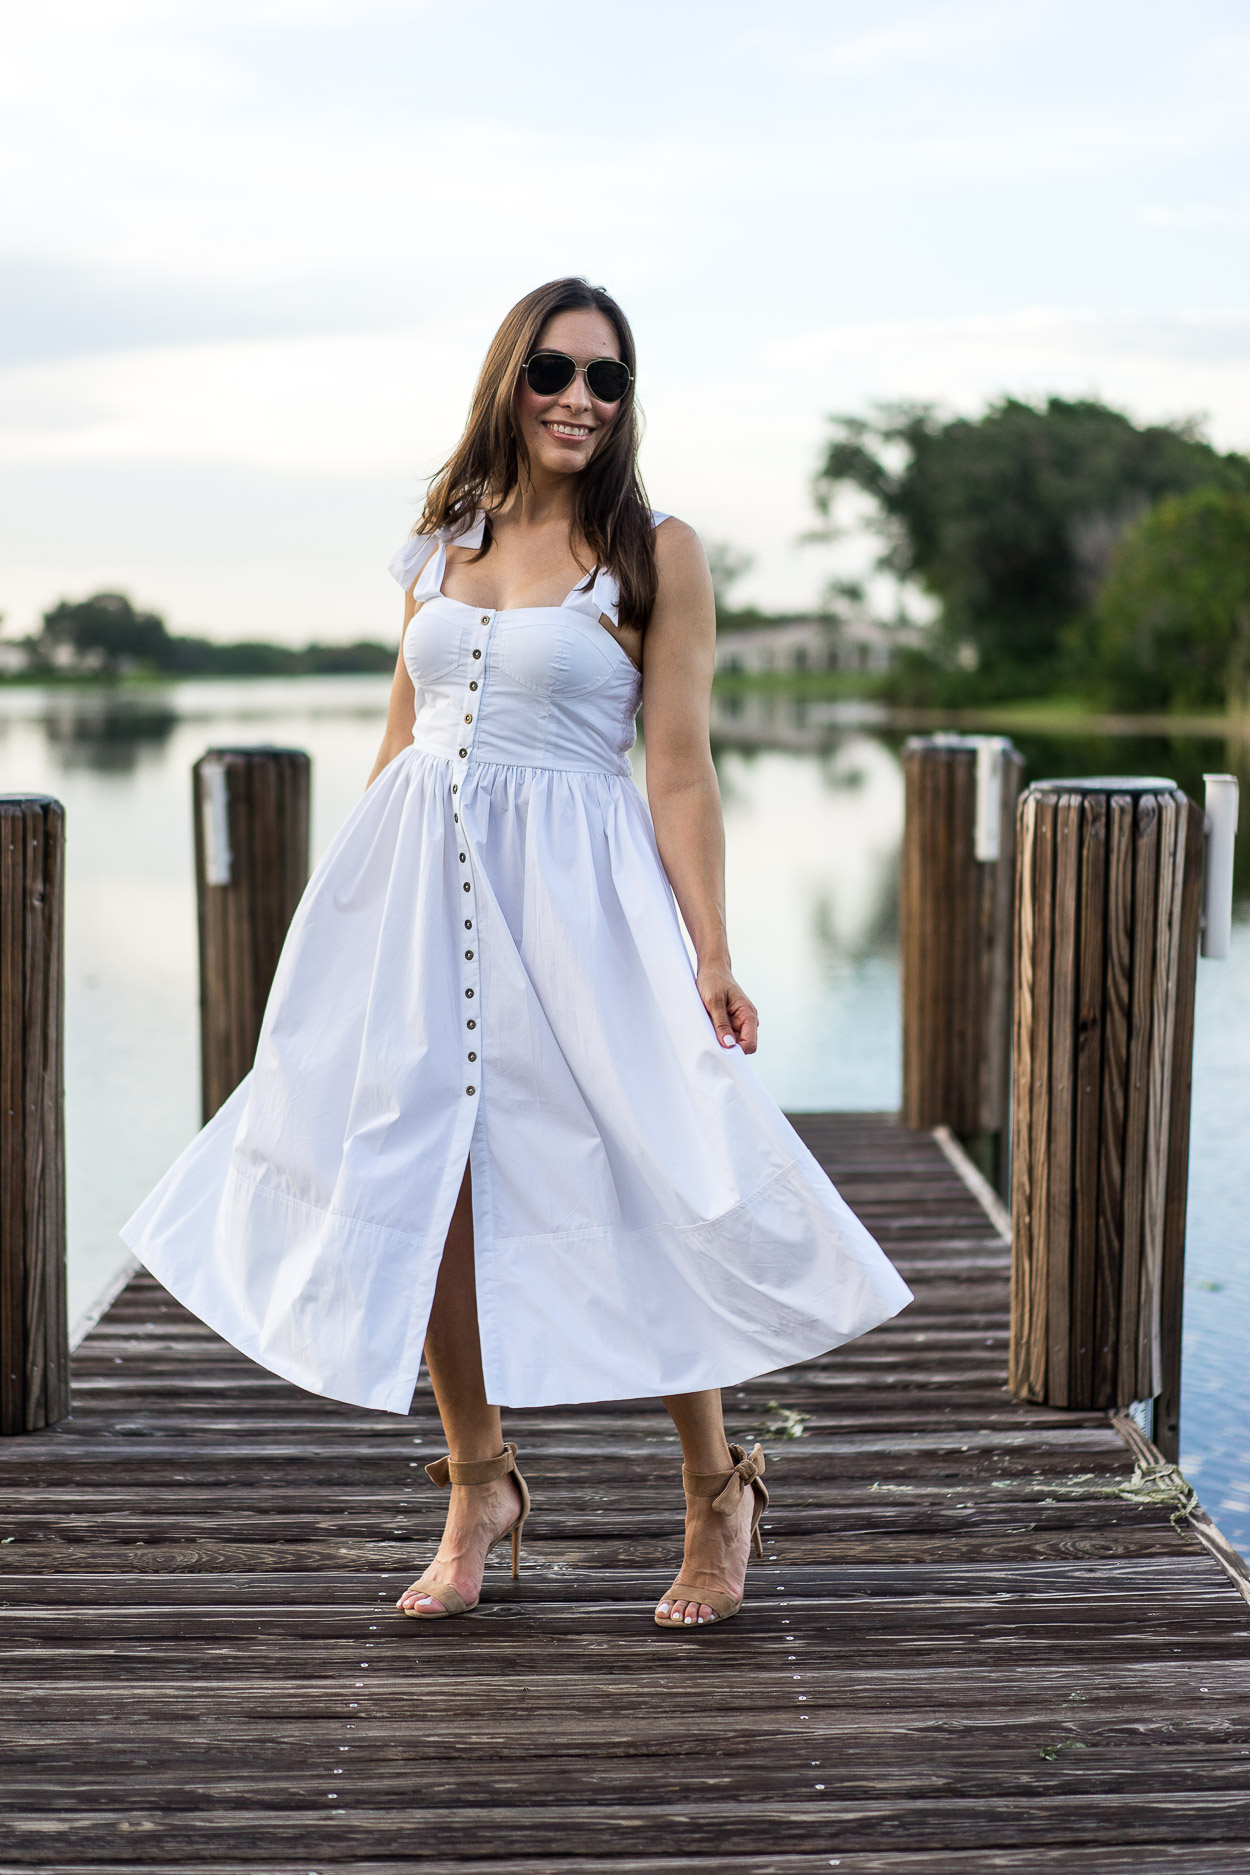 Twirl in a Summer white dress by Chicwish like South Florida blogger Amanda of A Glam Lifestyle